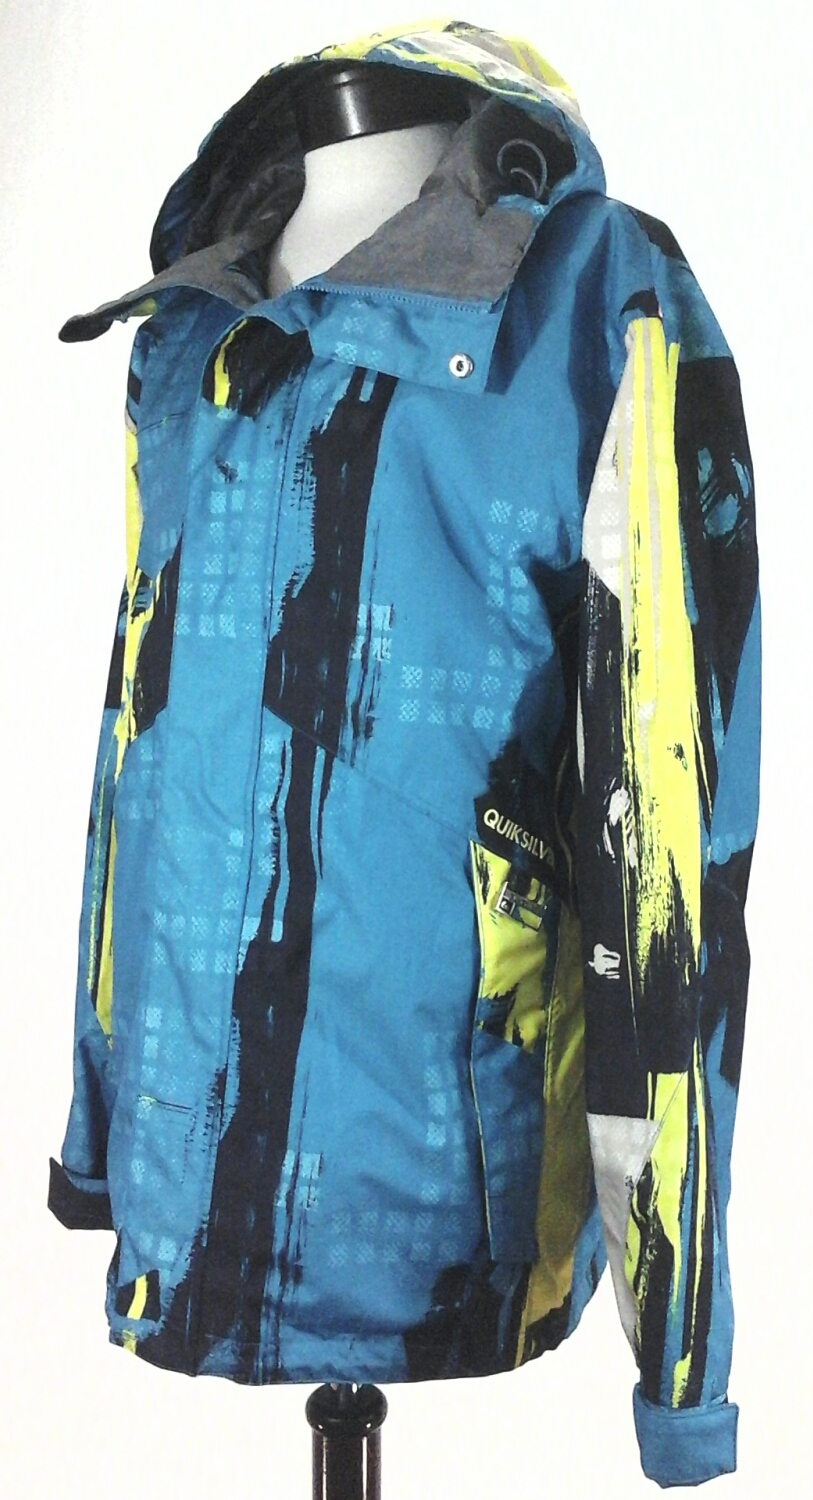 24b55e1275f3b Image is loading QUICKSILVER-Ski-Snowboard-Jacket-Turquoise-Yellow-Black- Print-